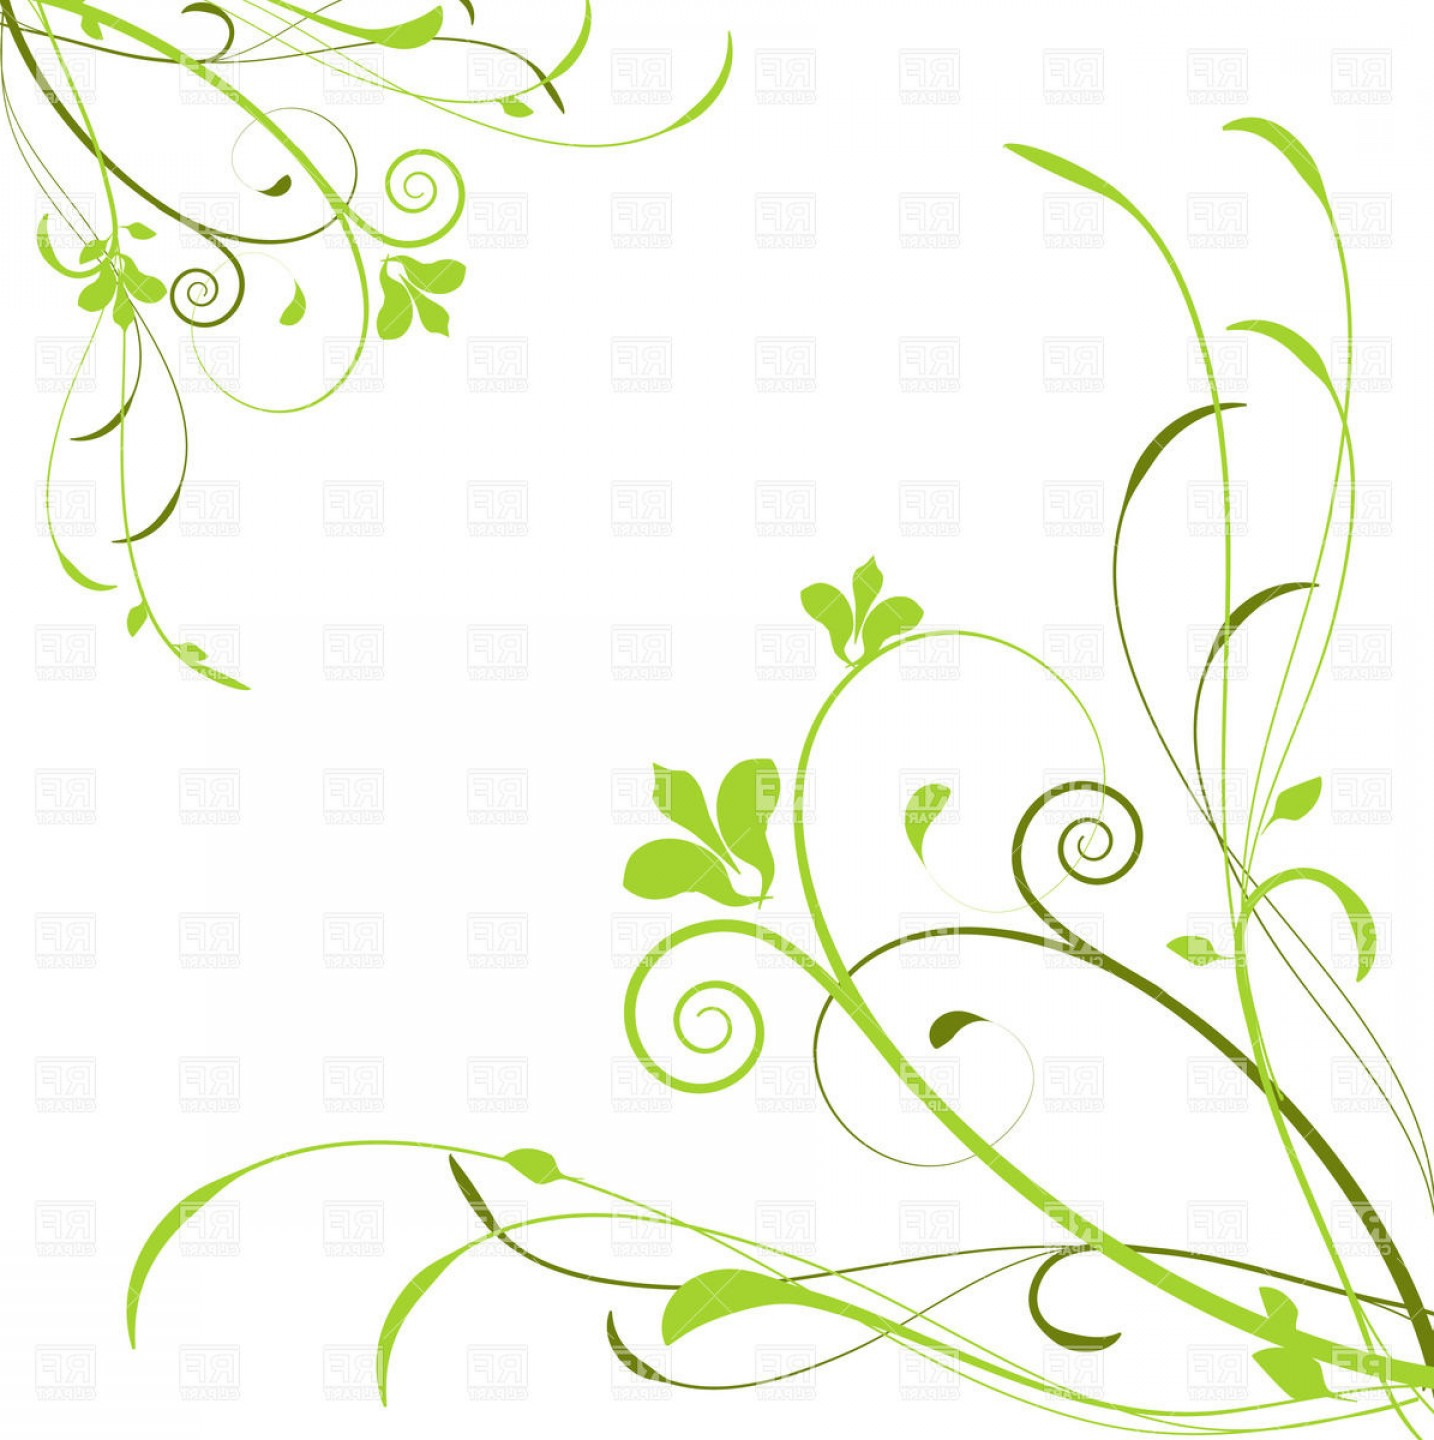 Green Flower Vector Designs: Abstract Background With Green Curly Flowers Vector Clipart